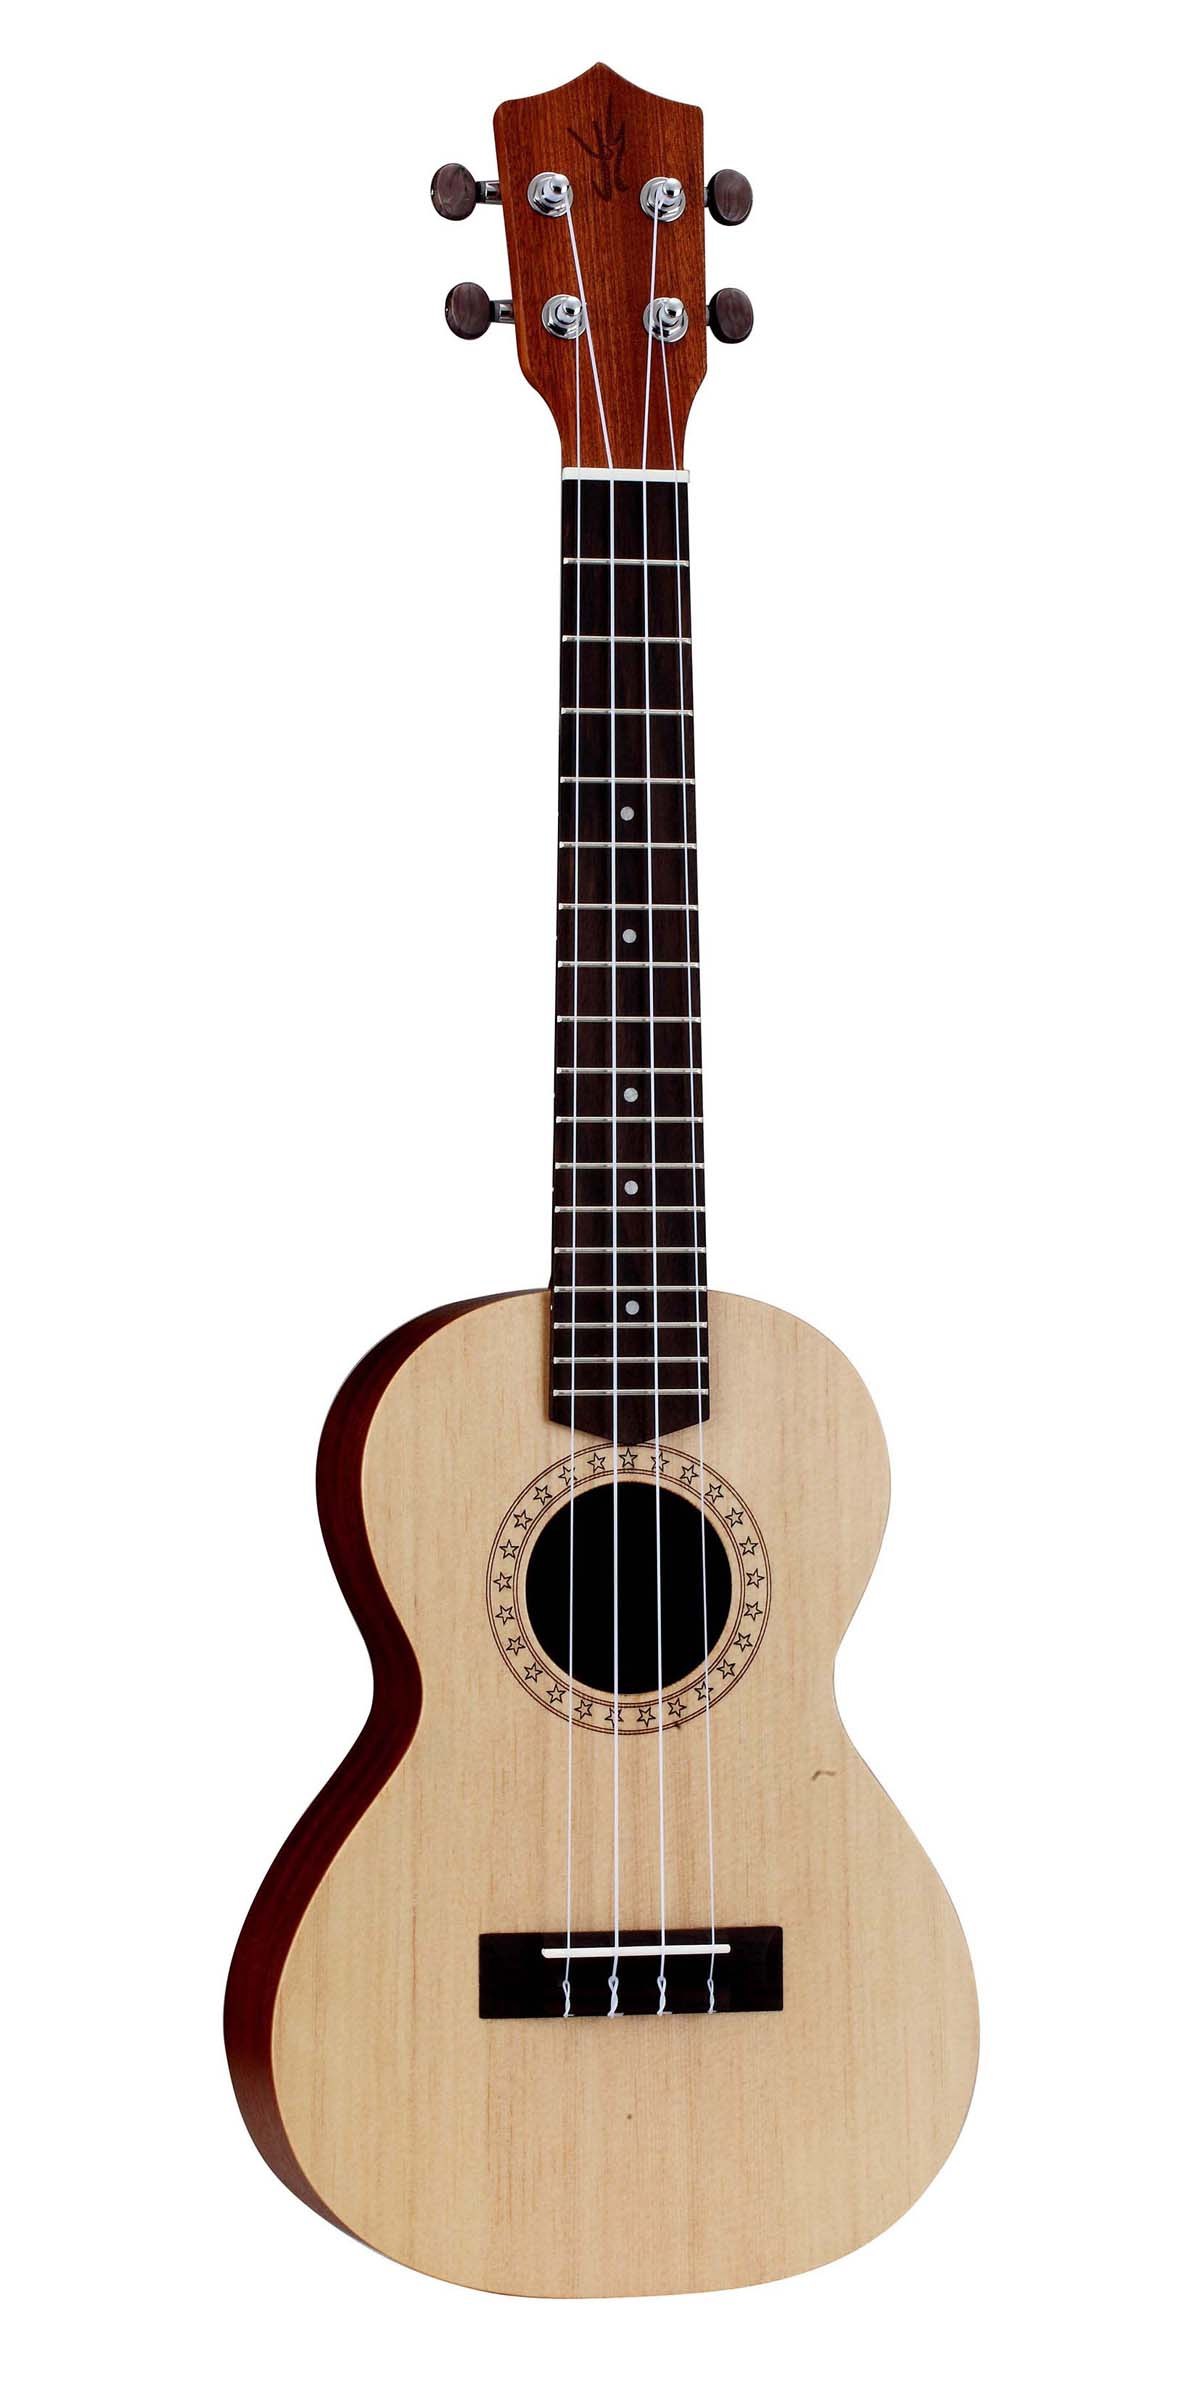 Laser-graving,Spruce Plywood,Tenor Ukulele